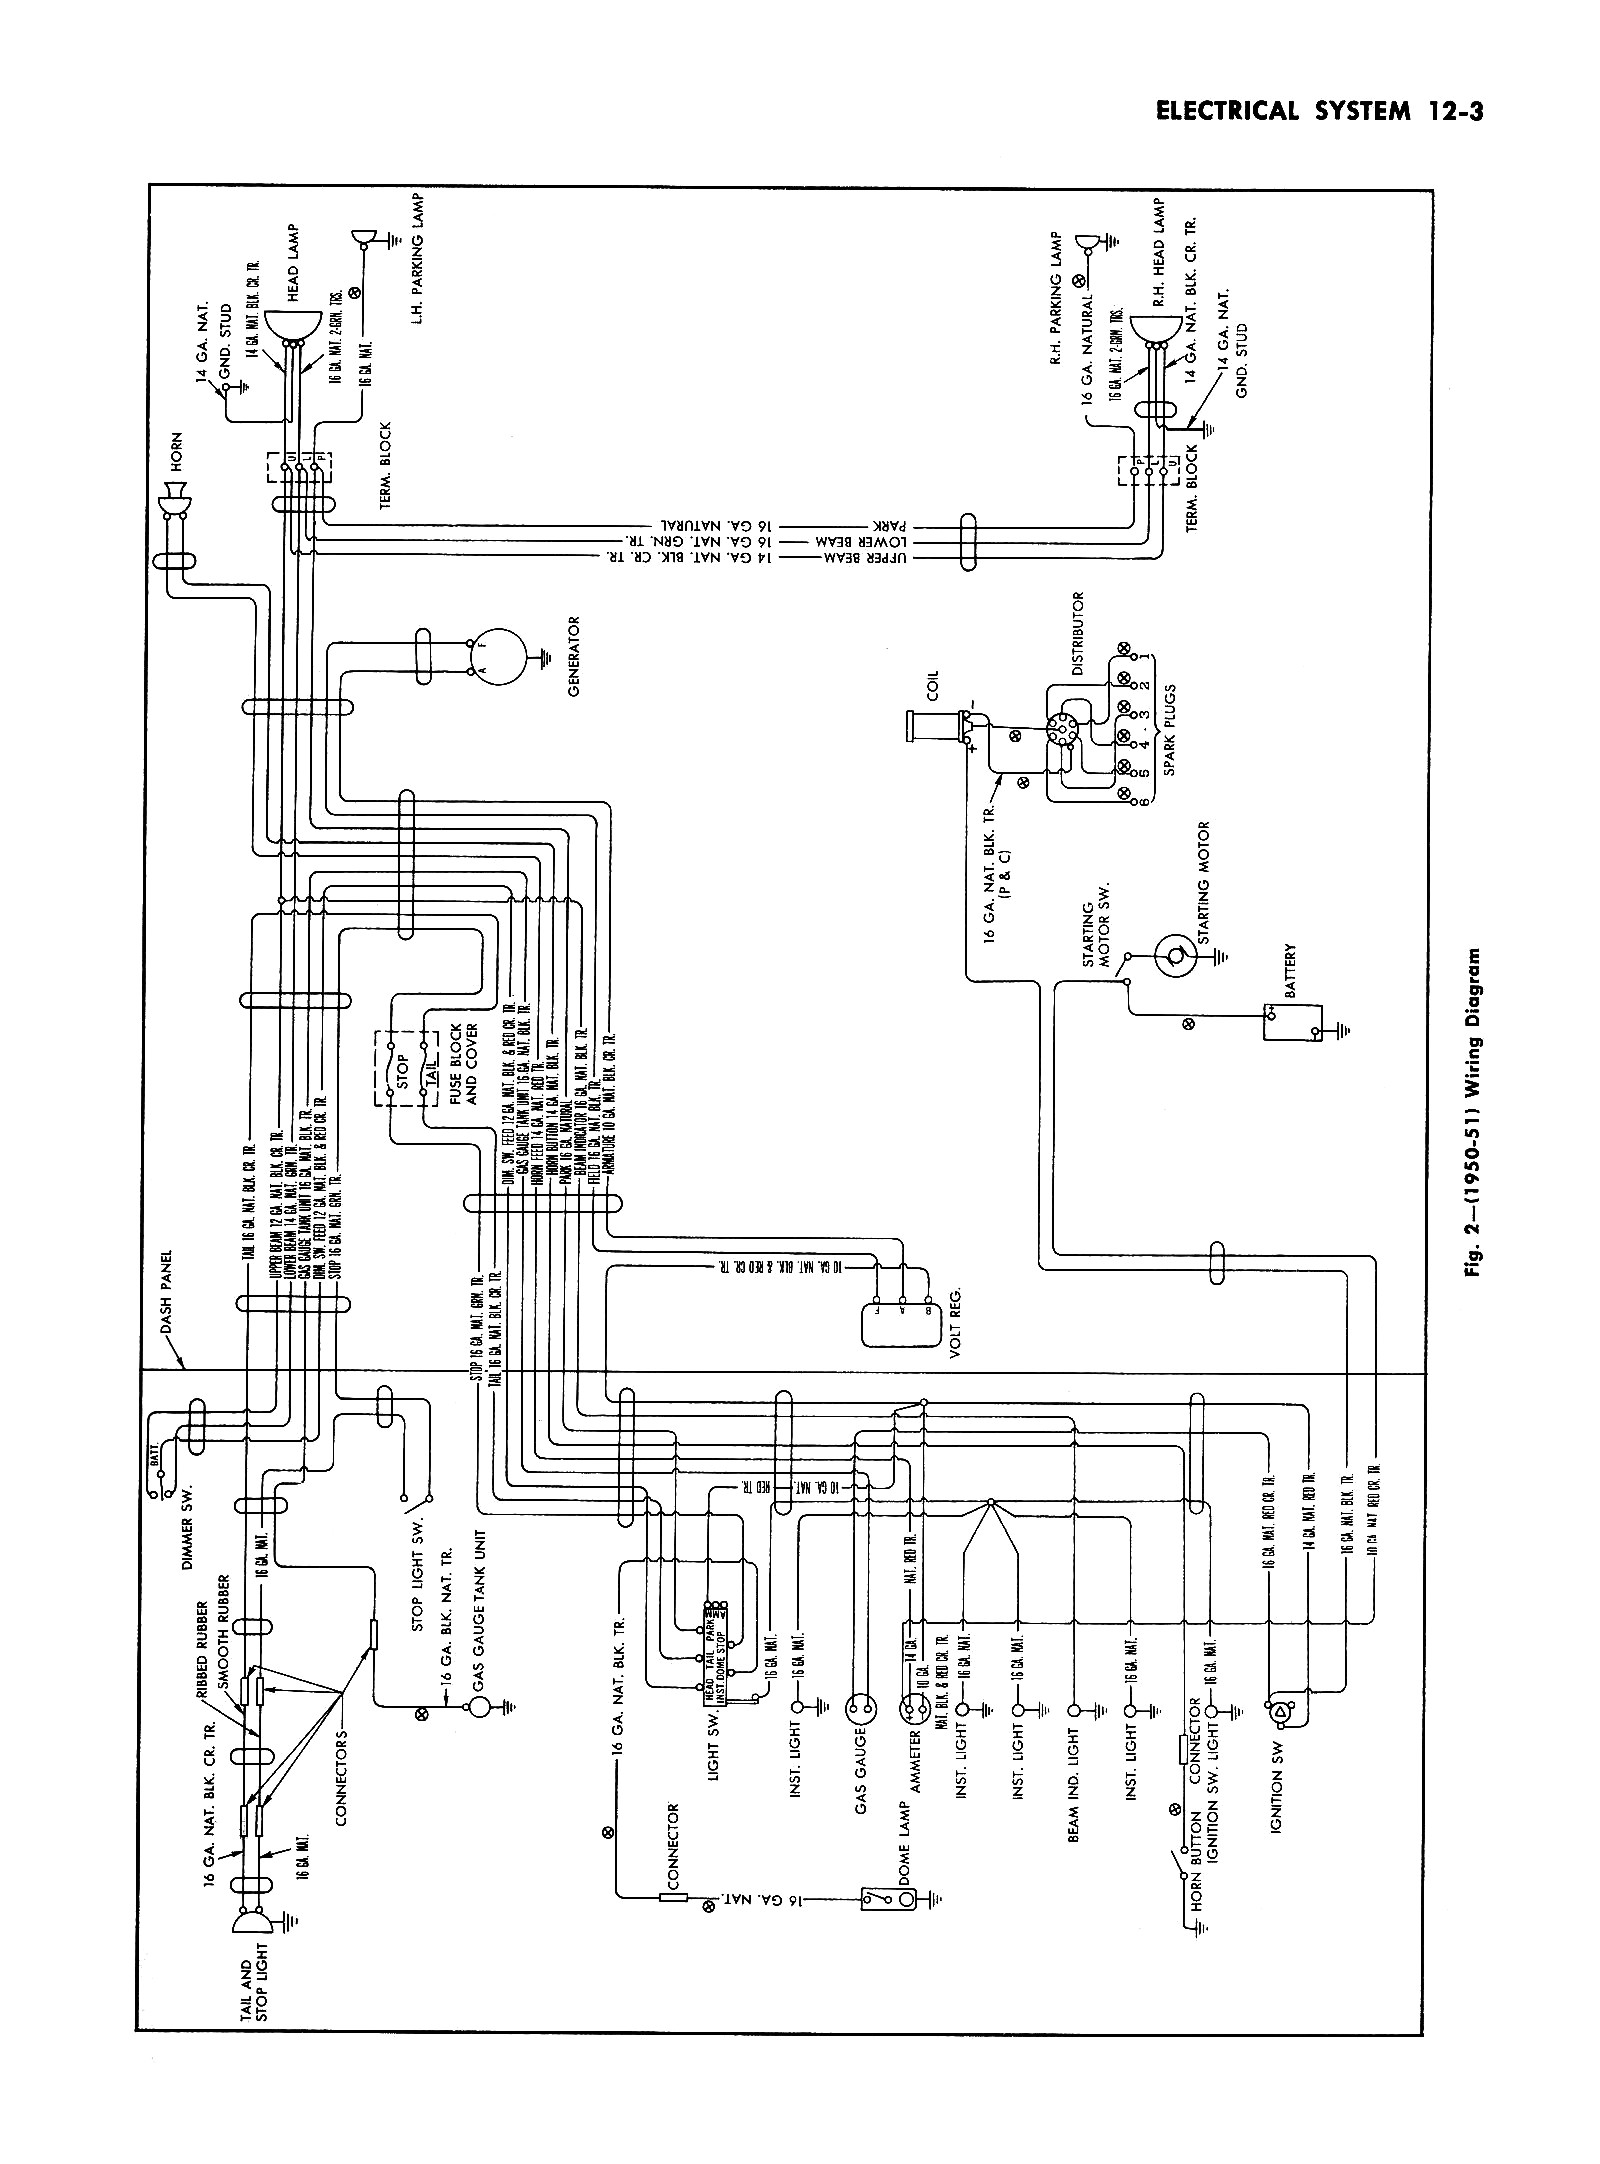 Wiring Diagram For A 1950 Dodge Truck Third Level 1984 Chevy Van Harness 1951 Diagrams Electrical